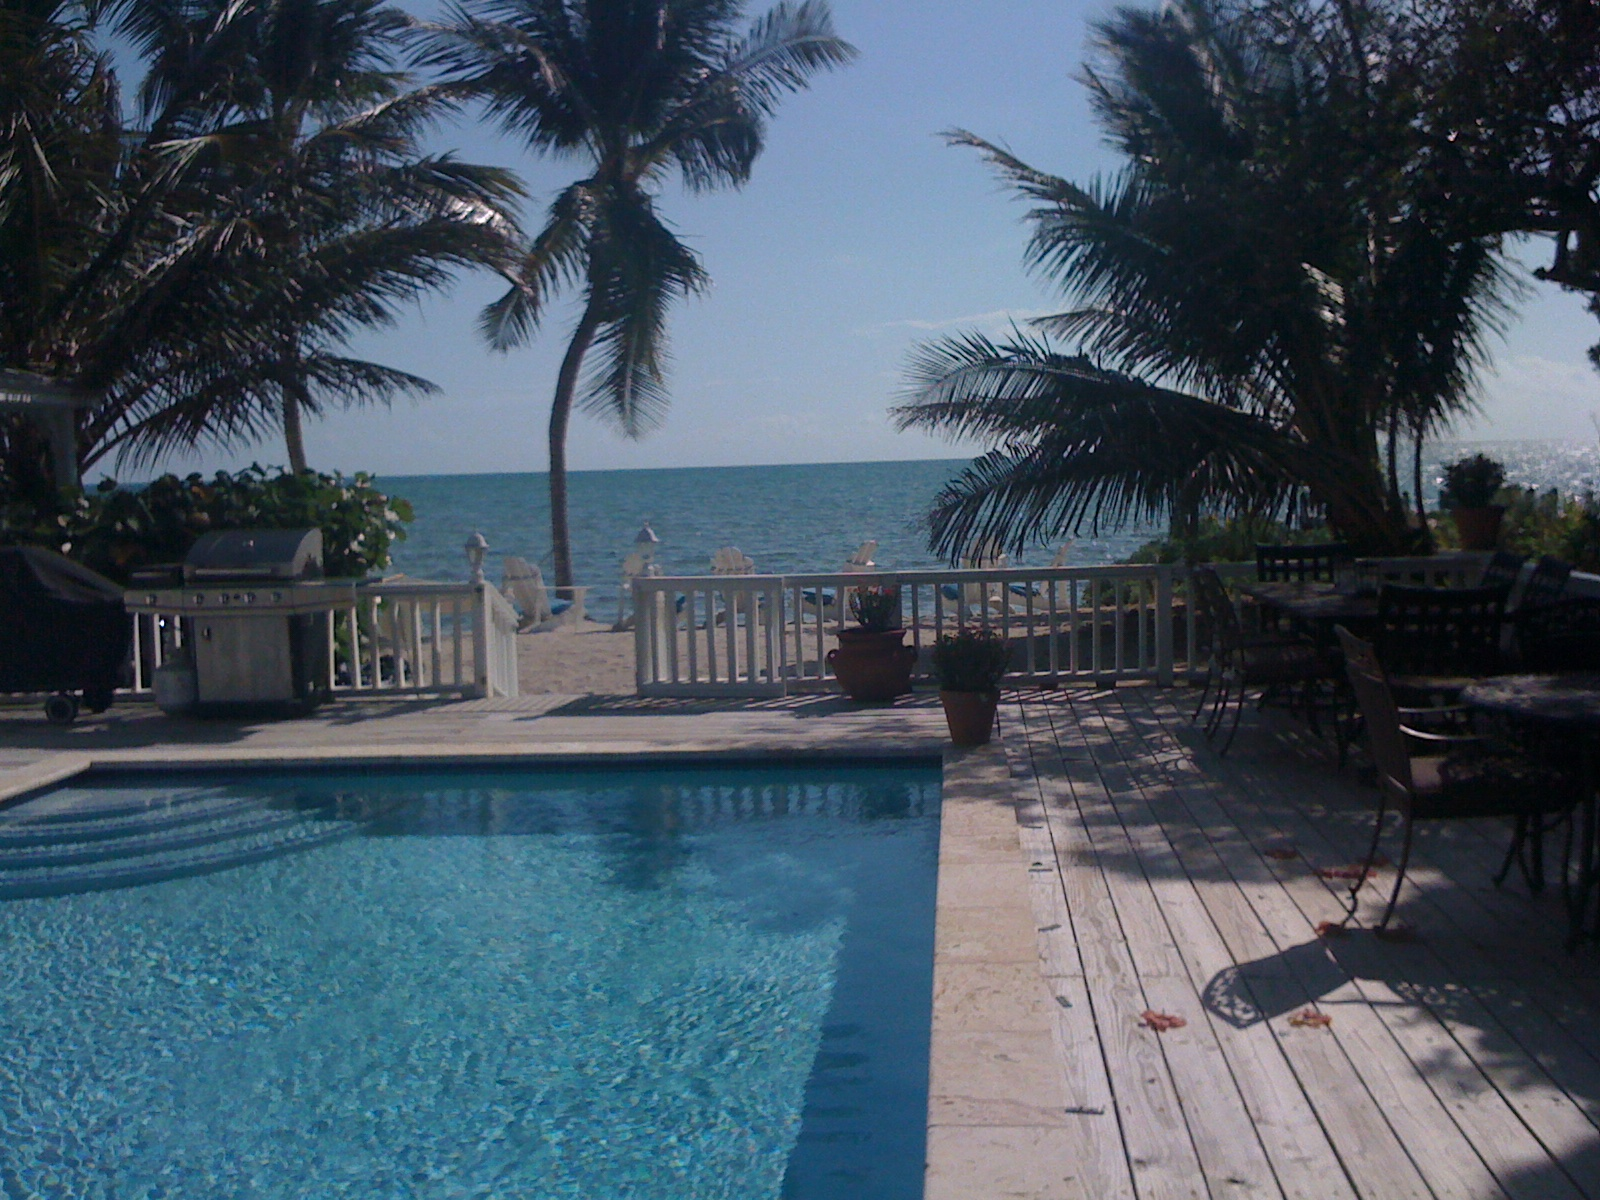 Private beach and swimming pool at vacation rental Islamorada Florida Keys